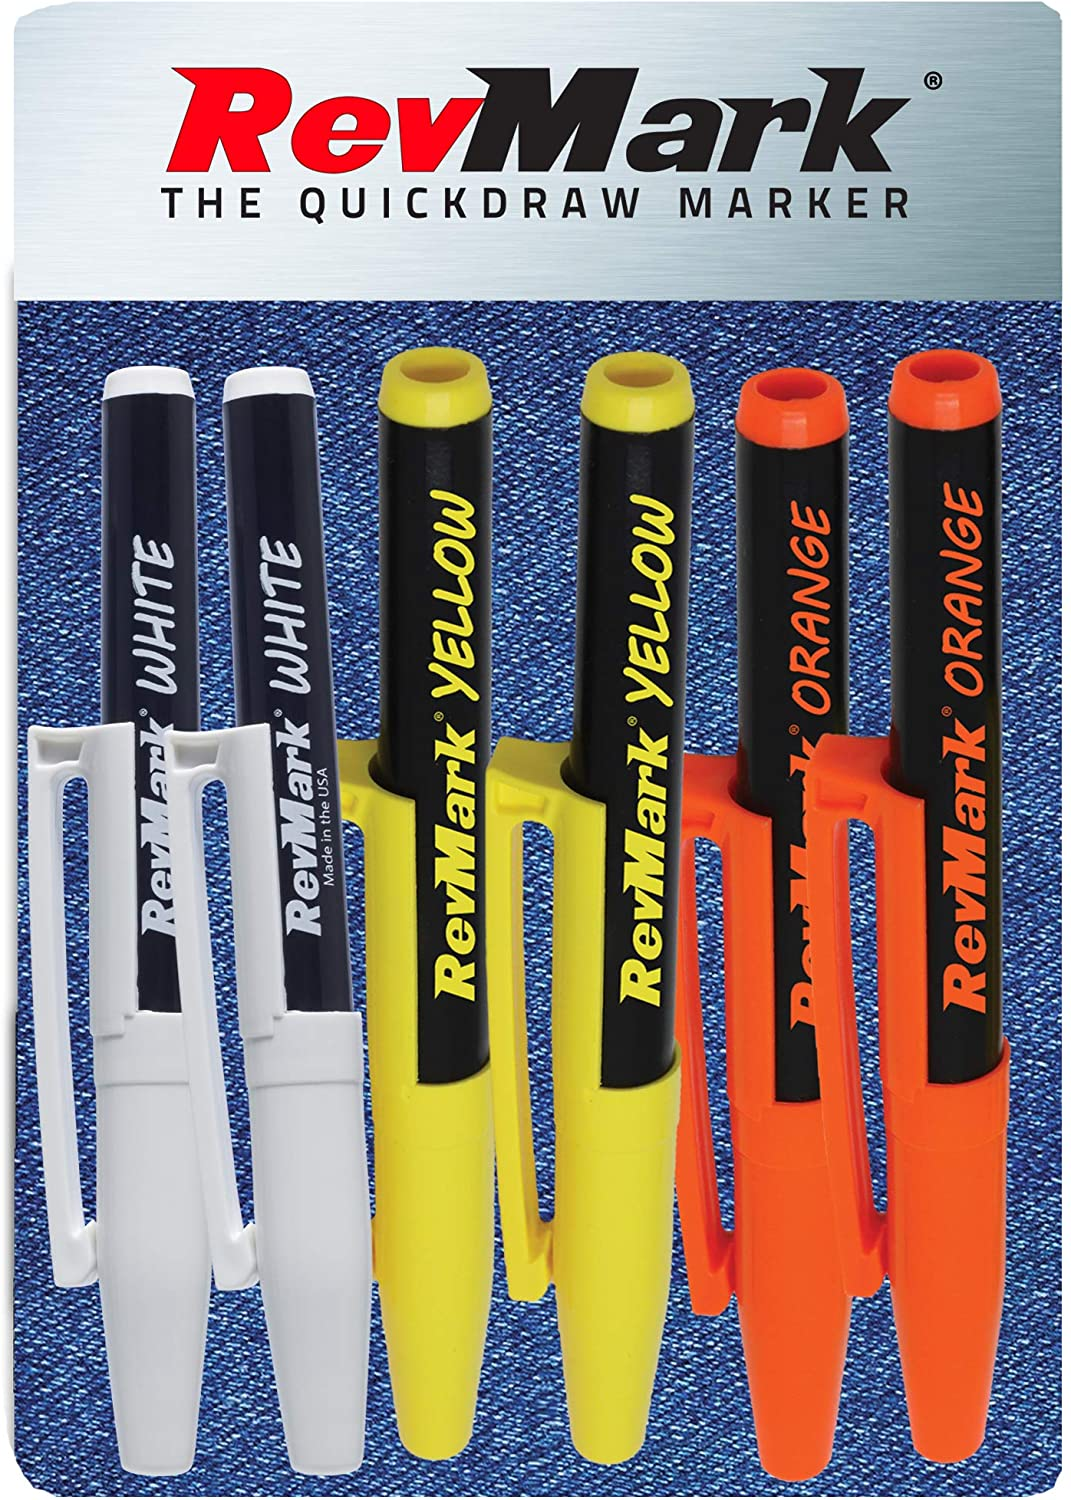 RevMark Bright Series Industrial Marker - 6 Pack - Made in USA - Replaces paint marker for metal, pipe, pvc - ASSORTED